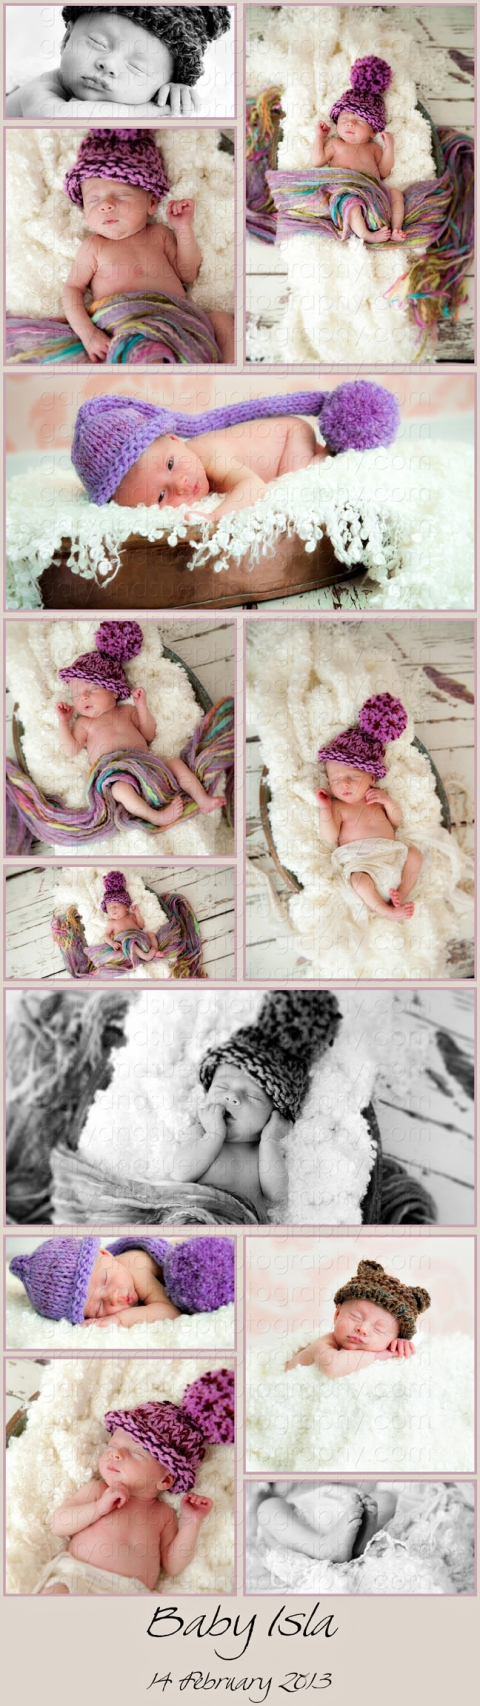 Newborn Baby Photography Cardiff - pictures of baby Isla at 16 days old.